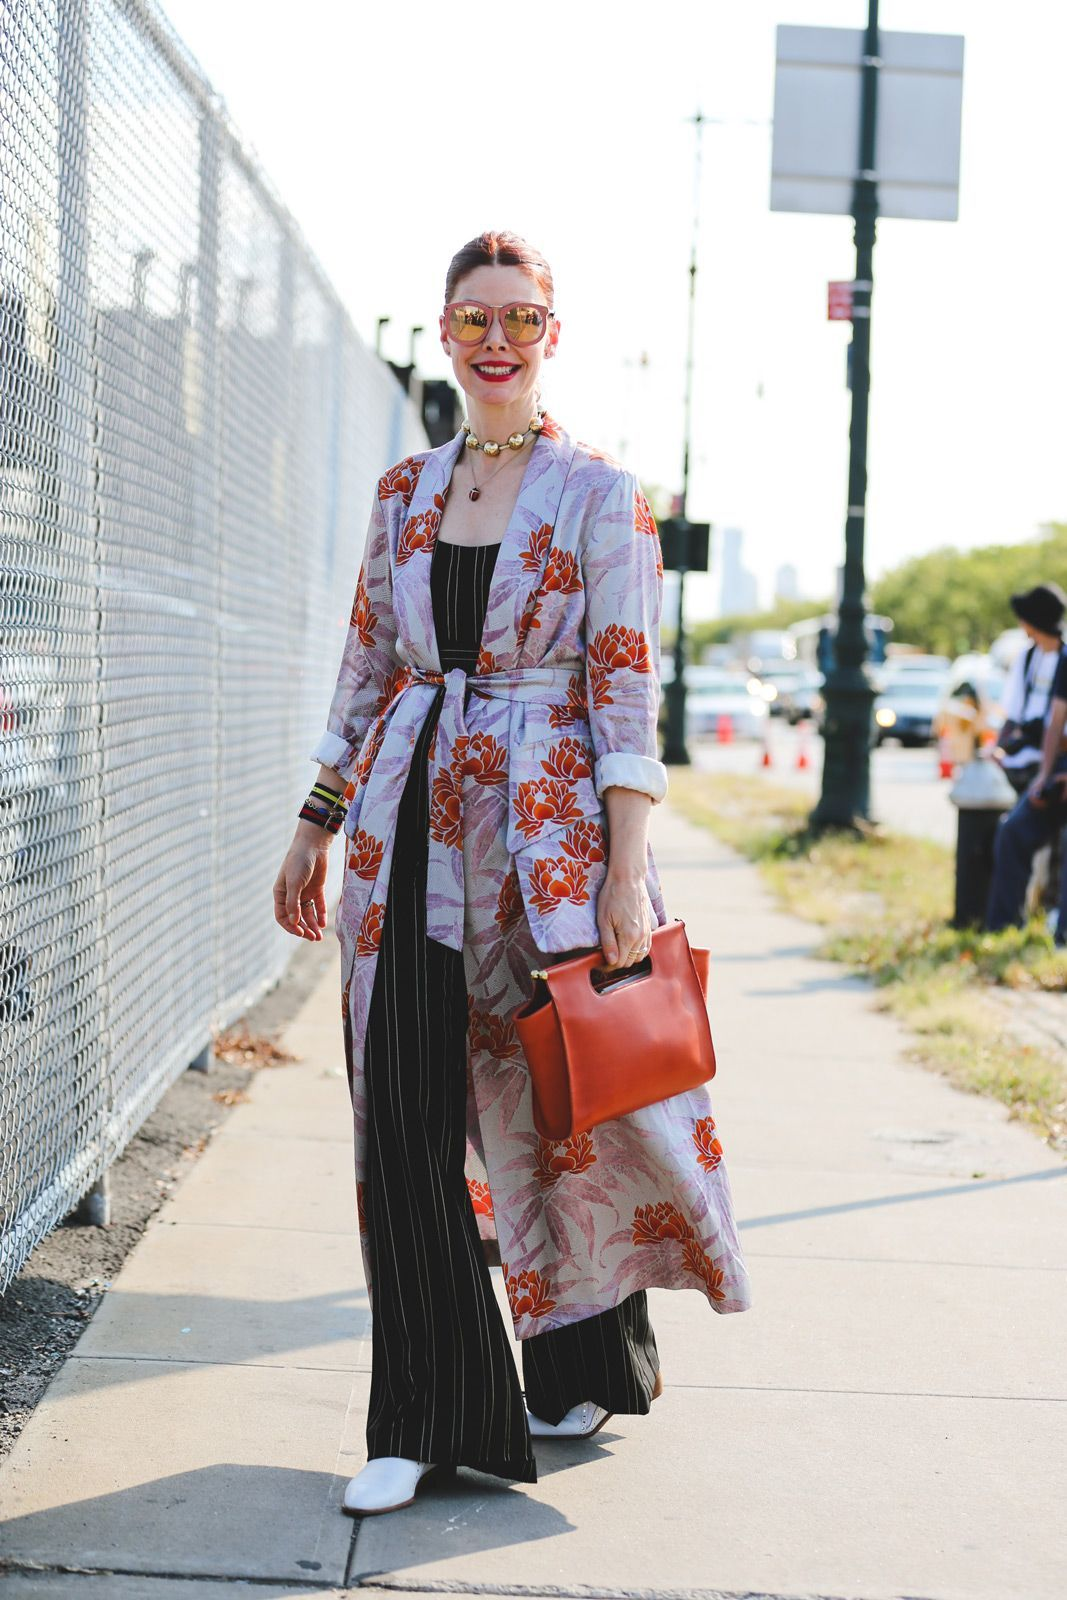 100+ Outfits We're Copying From The Streets Of New York City #refinery29  http://www.refinery29.com/2016/09/120553/nyfw-spring-2017-best-street-style-outfits#slide-116  Tinted frames are the next big thing....